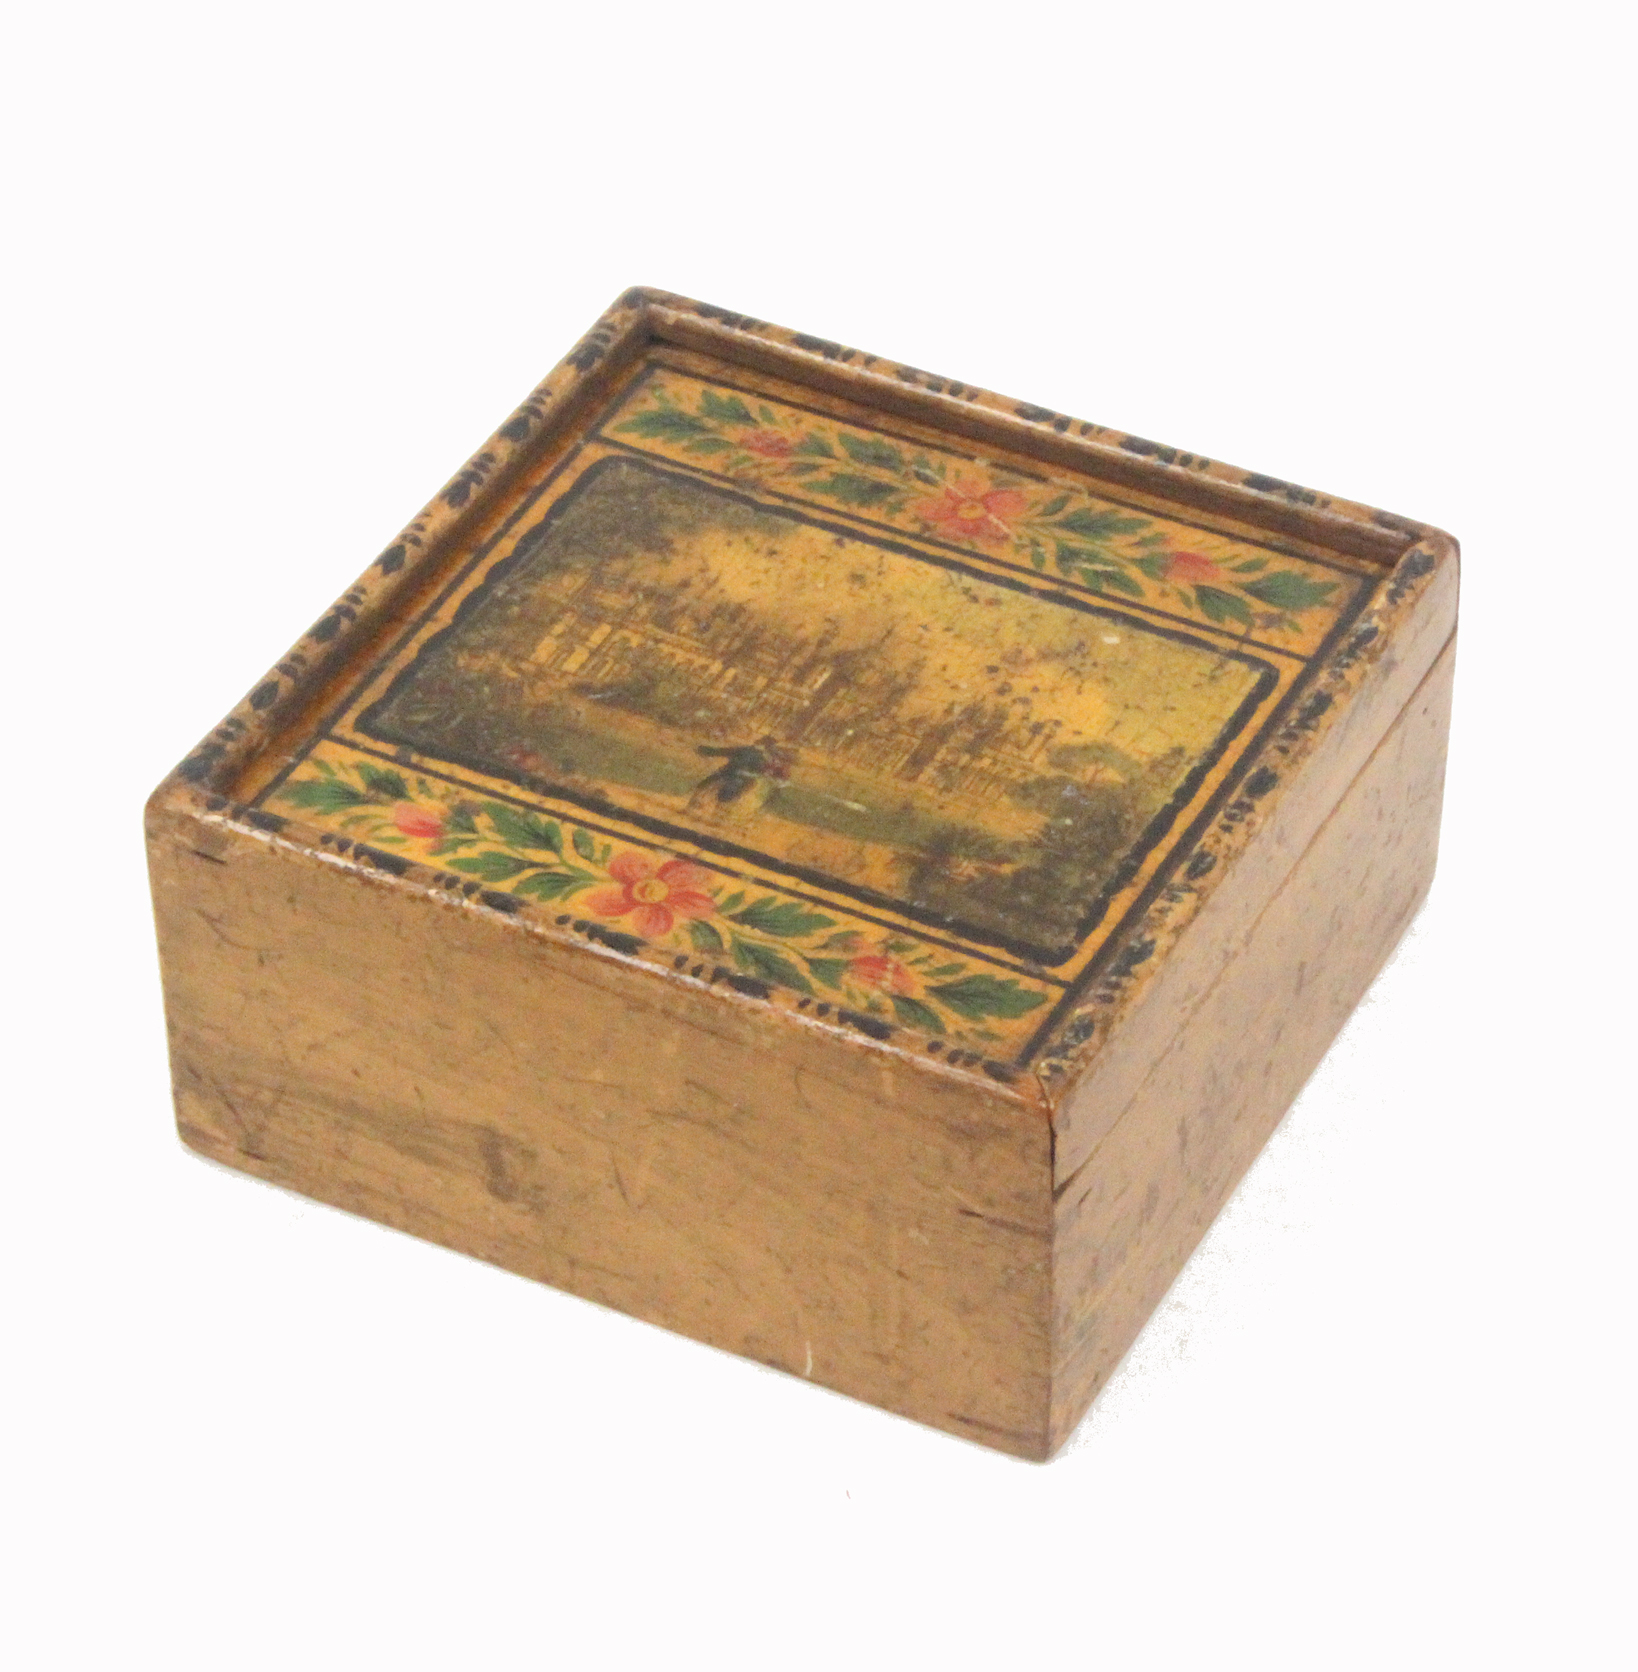 Lot 57 - An early painted and print decorated Tunbridge ware whitewood box, the sliding lid with a colour